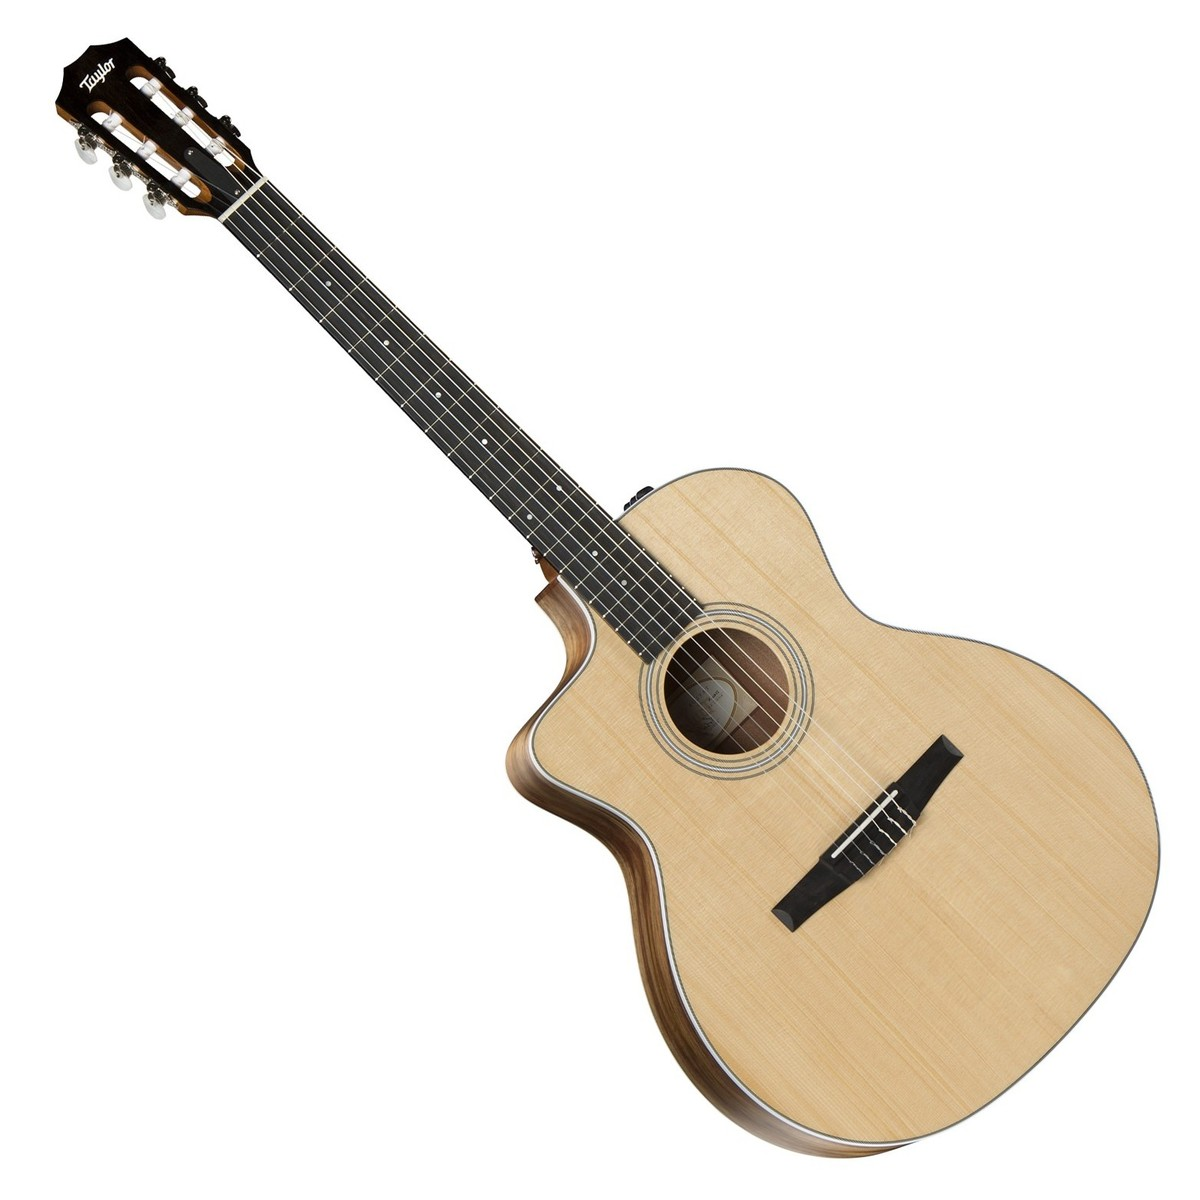 taylor 214ce grand auditorium nylon lh electro acoustic guitar box opened at gear4music. Black Bedroom Furniture Sets. Home Design Ideas